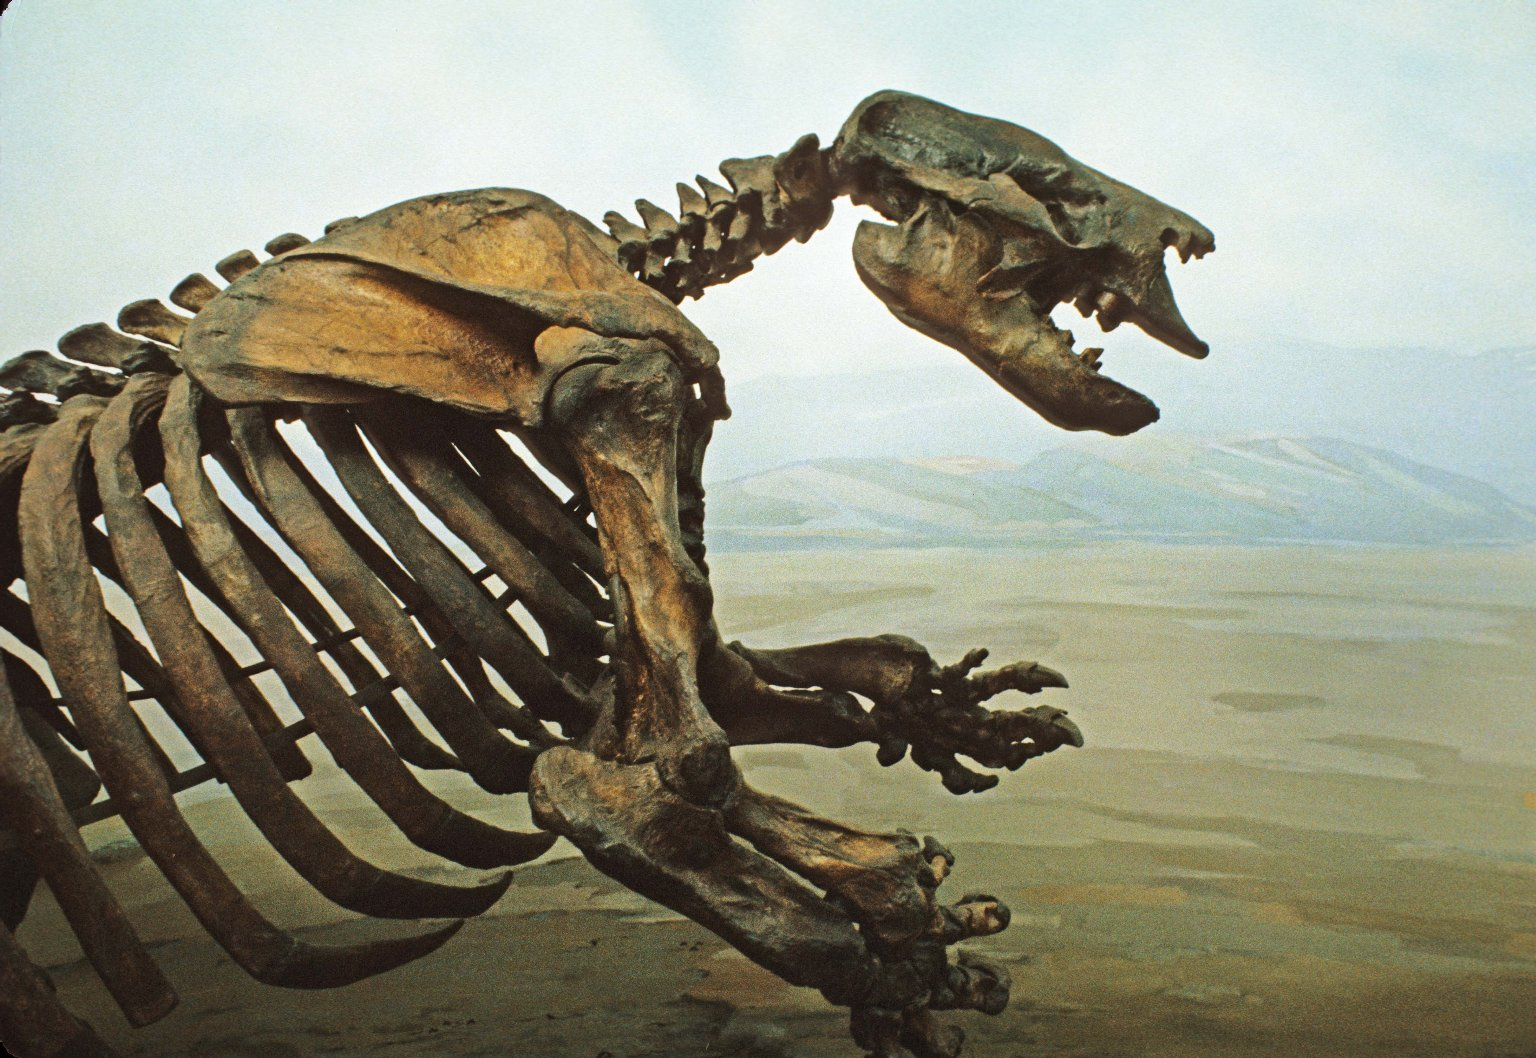 Giant Sloth Articulated Skeleton